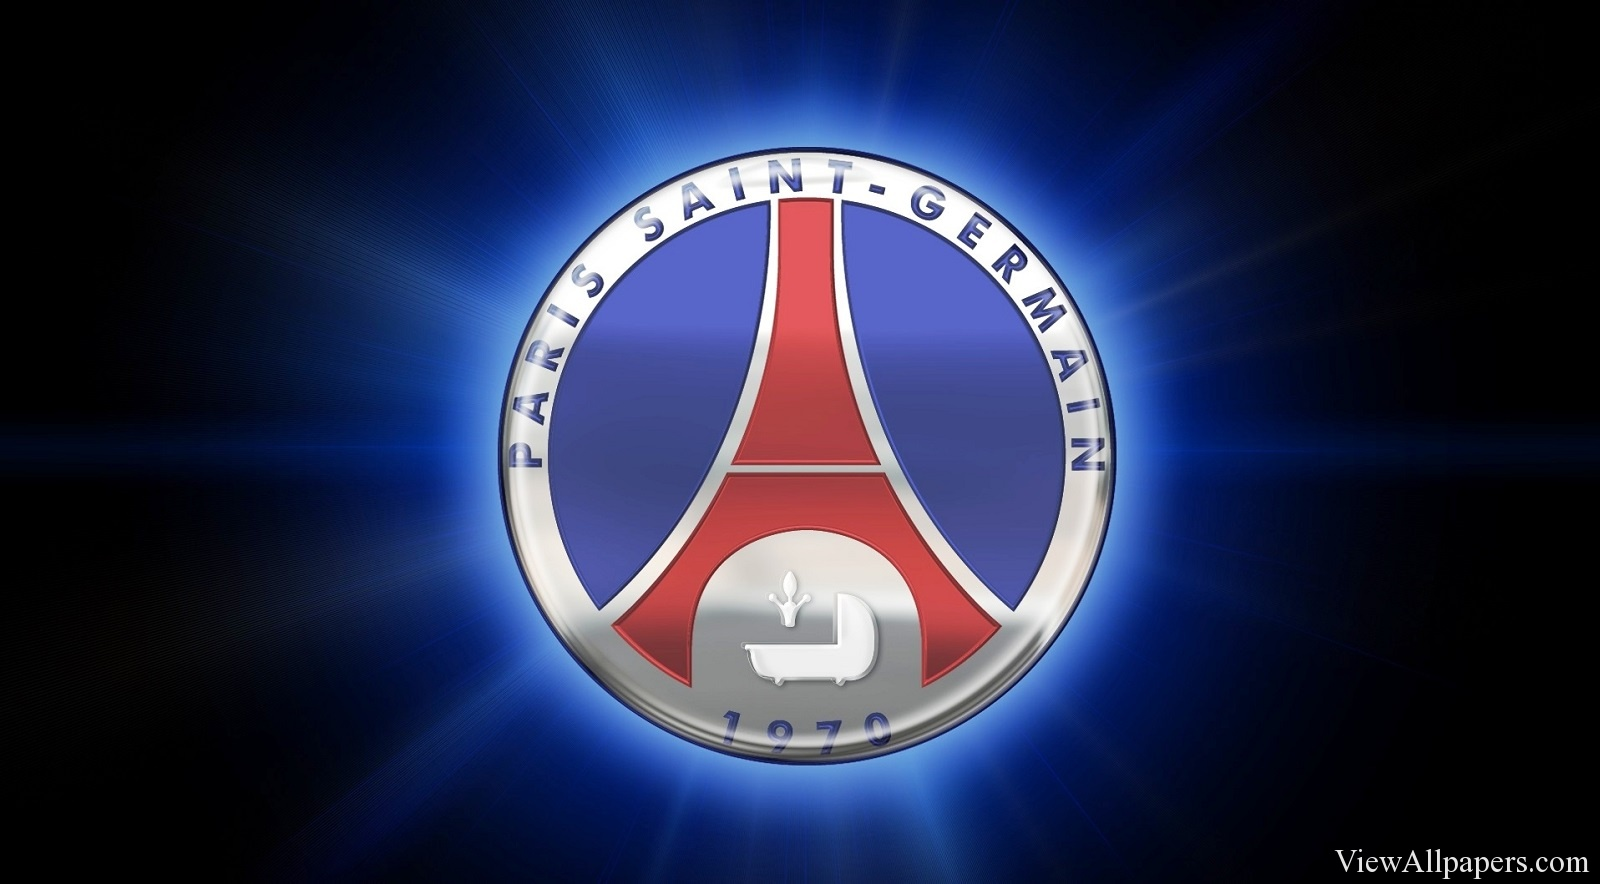 1600x884 - Paris Saint-Germain F.C. Wallpapers 23